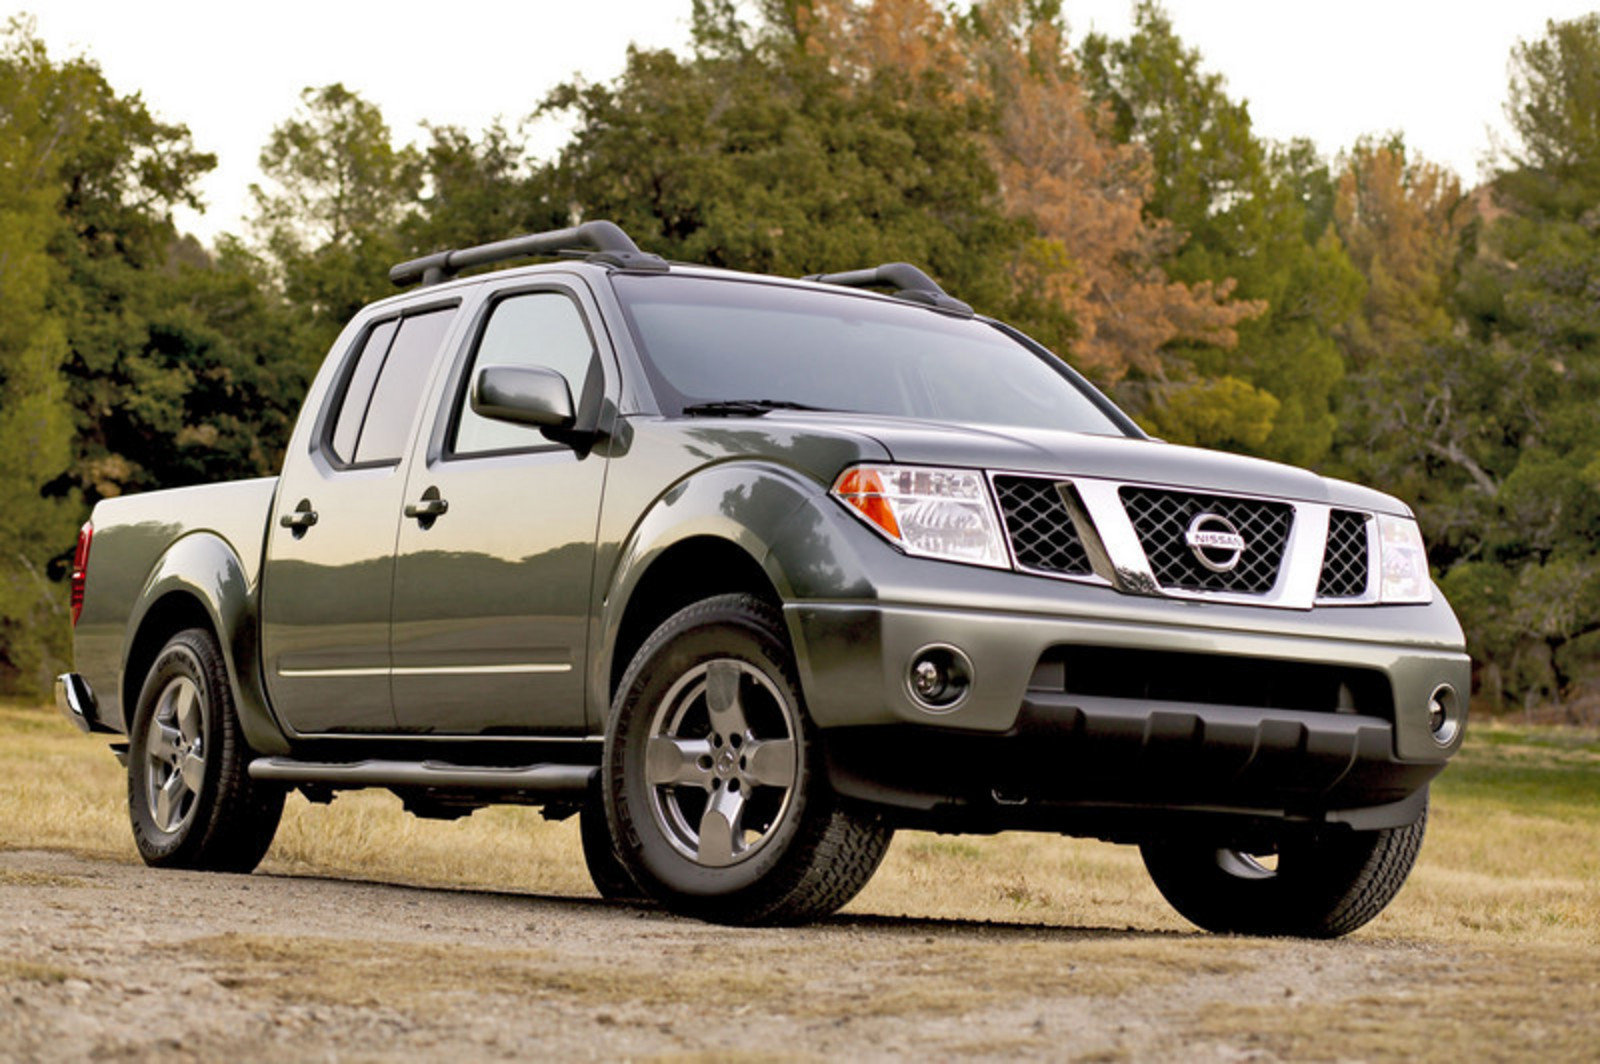 2006 nissan frontier picture 41186 car review top speed. Black Bedroom Furniture Sets. Home Design Ideas